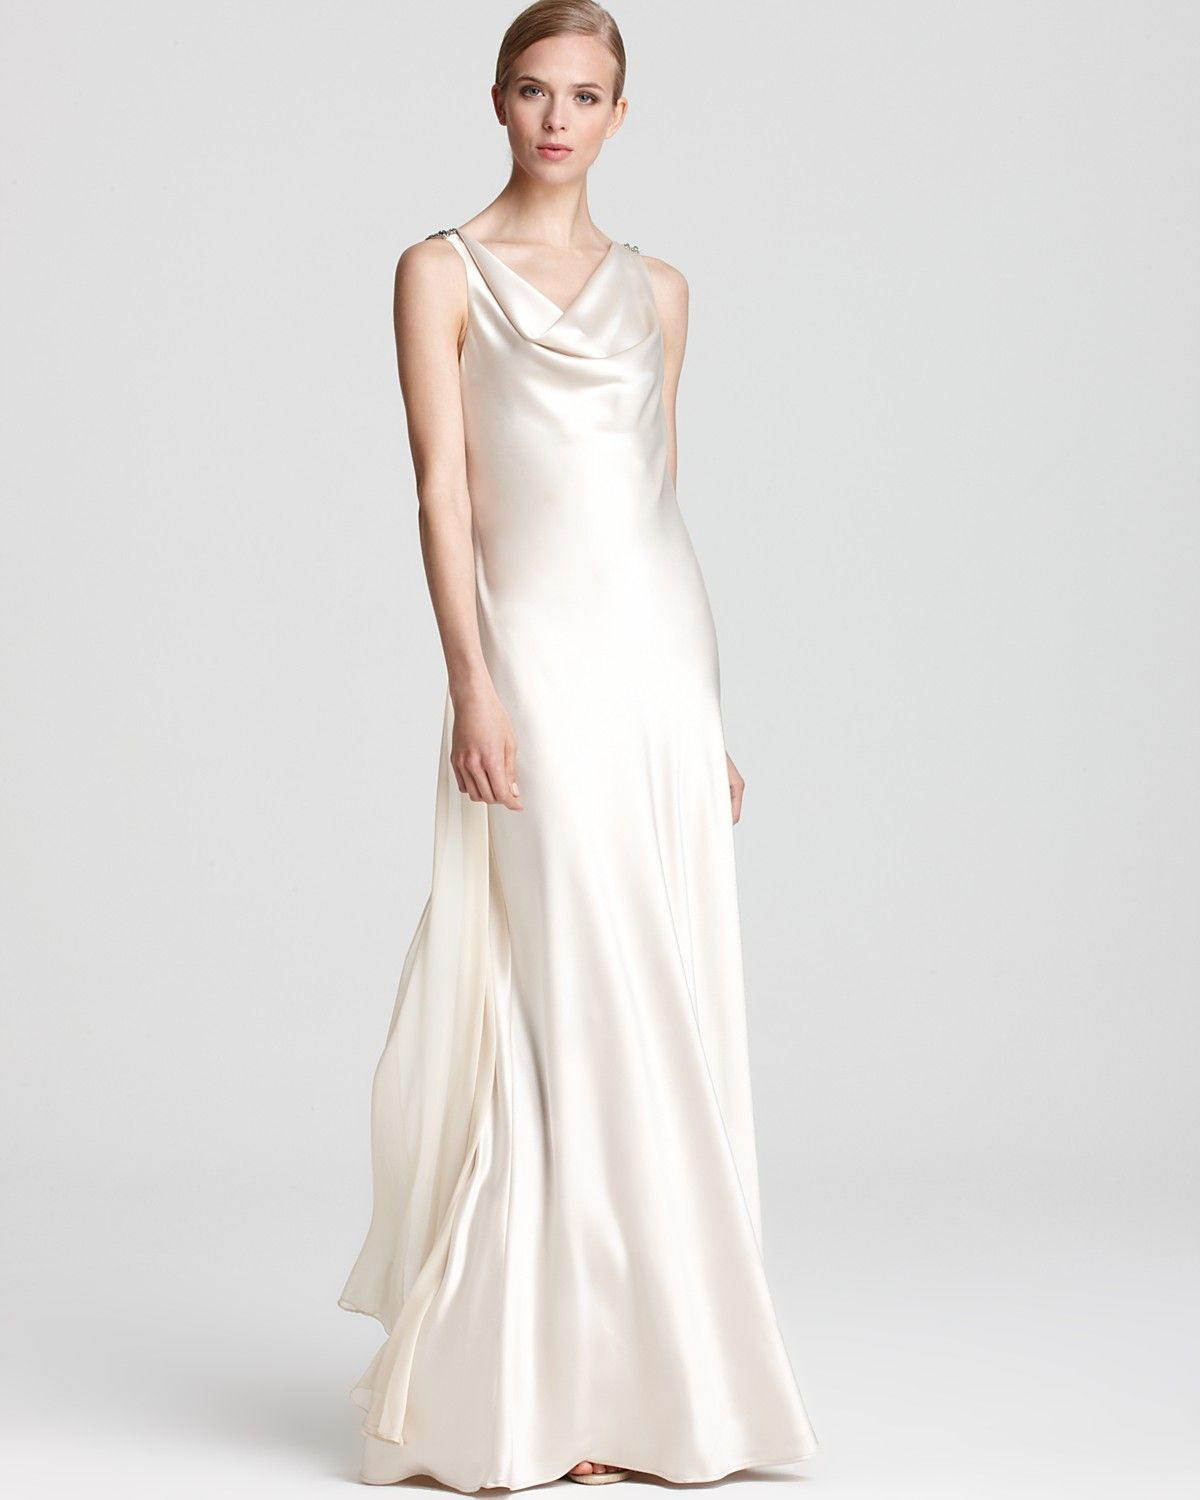 Mary abs by allen schwartz embellished gown sleeveless cowl back